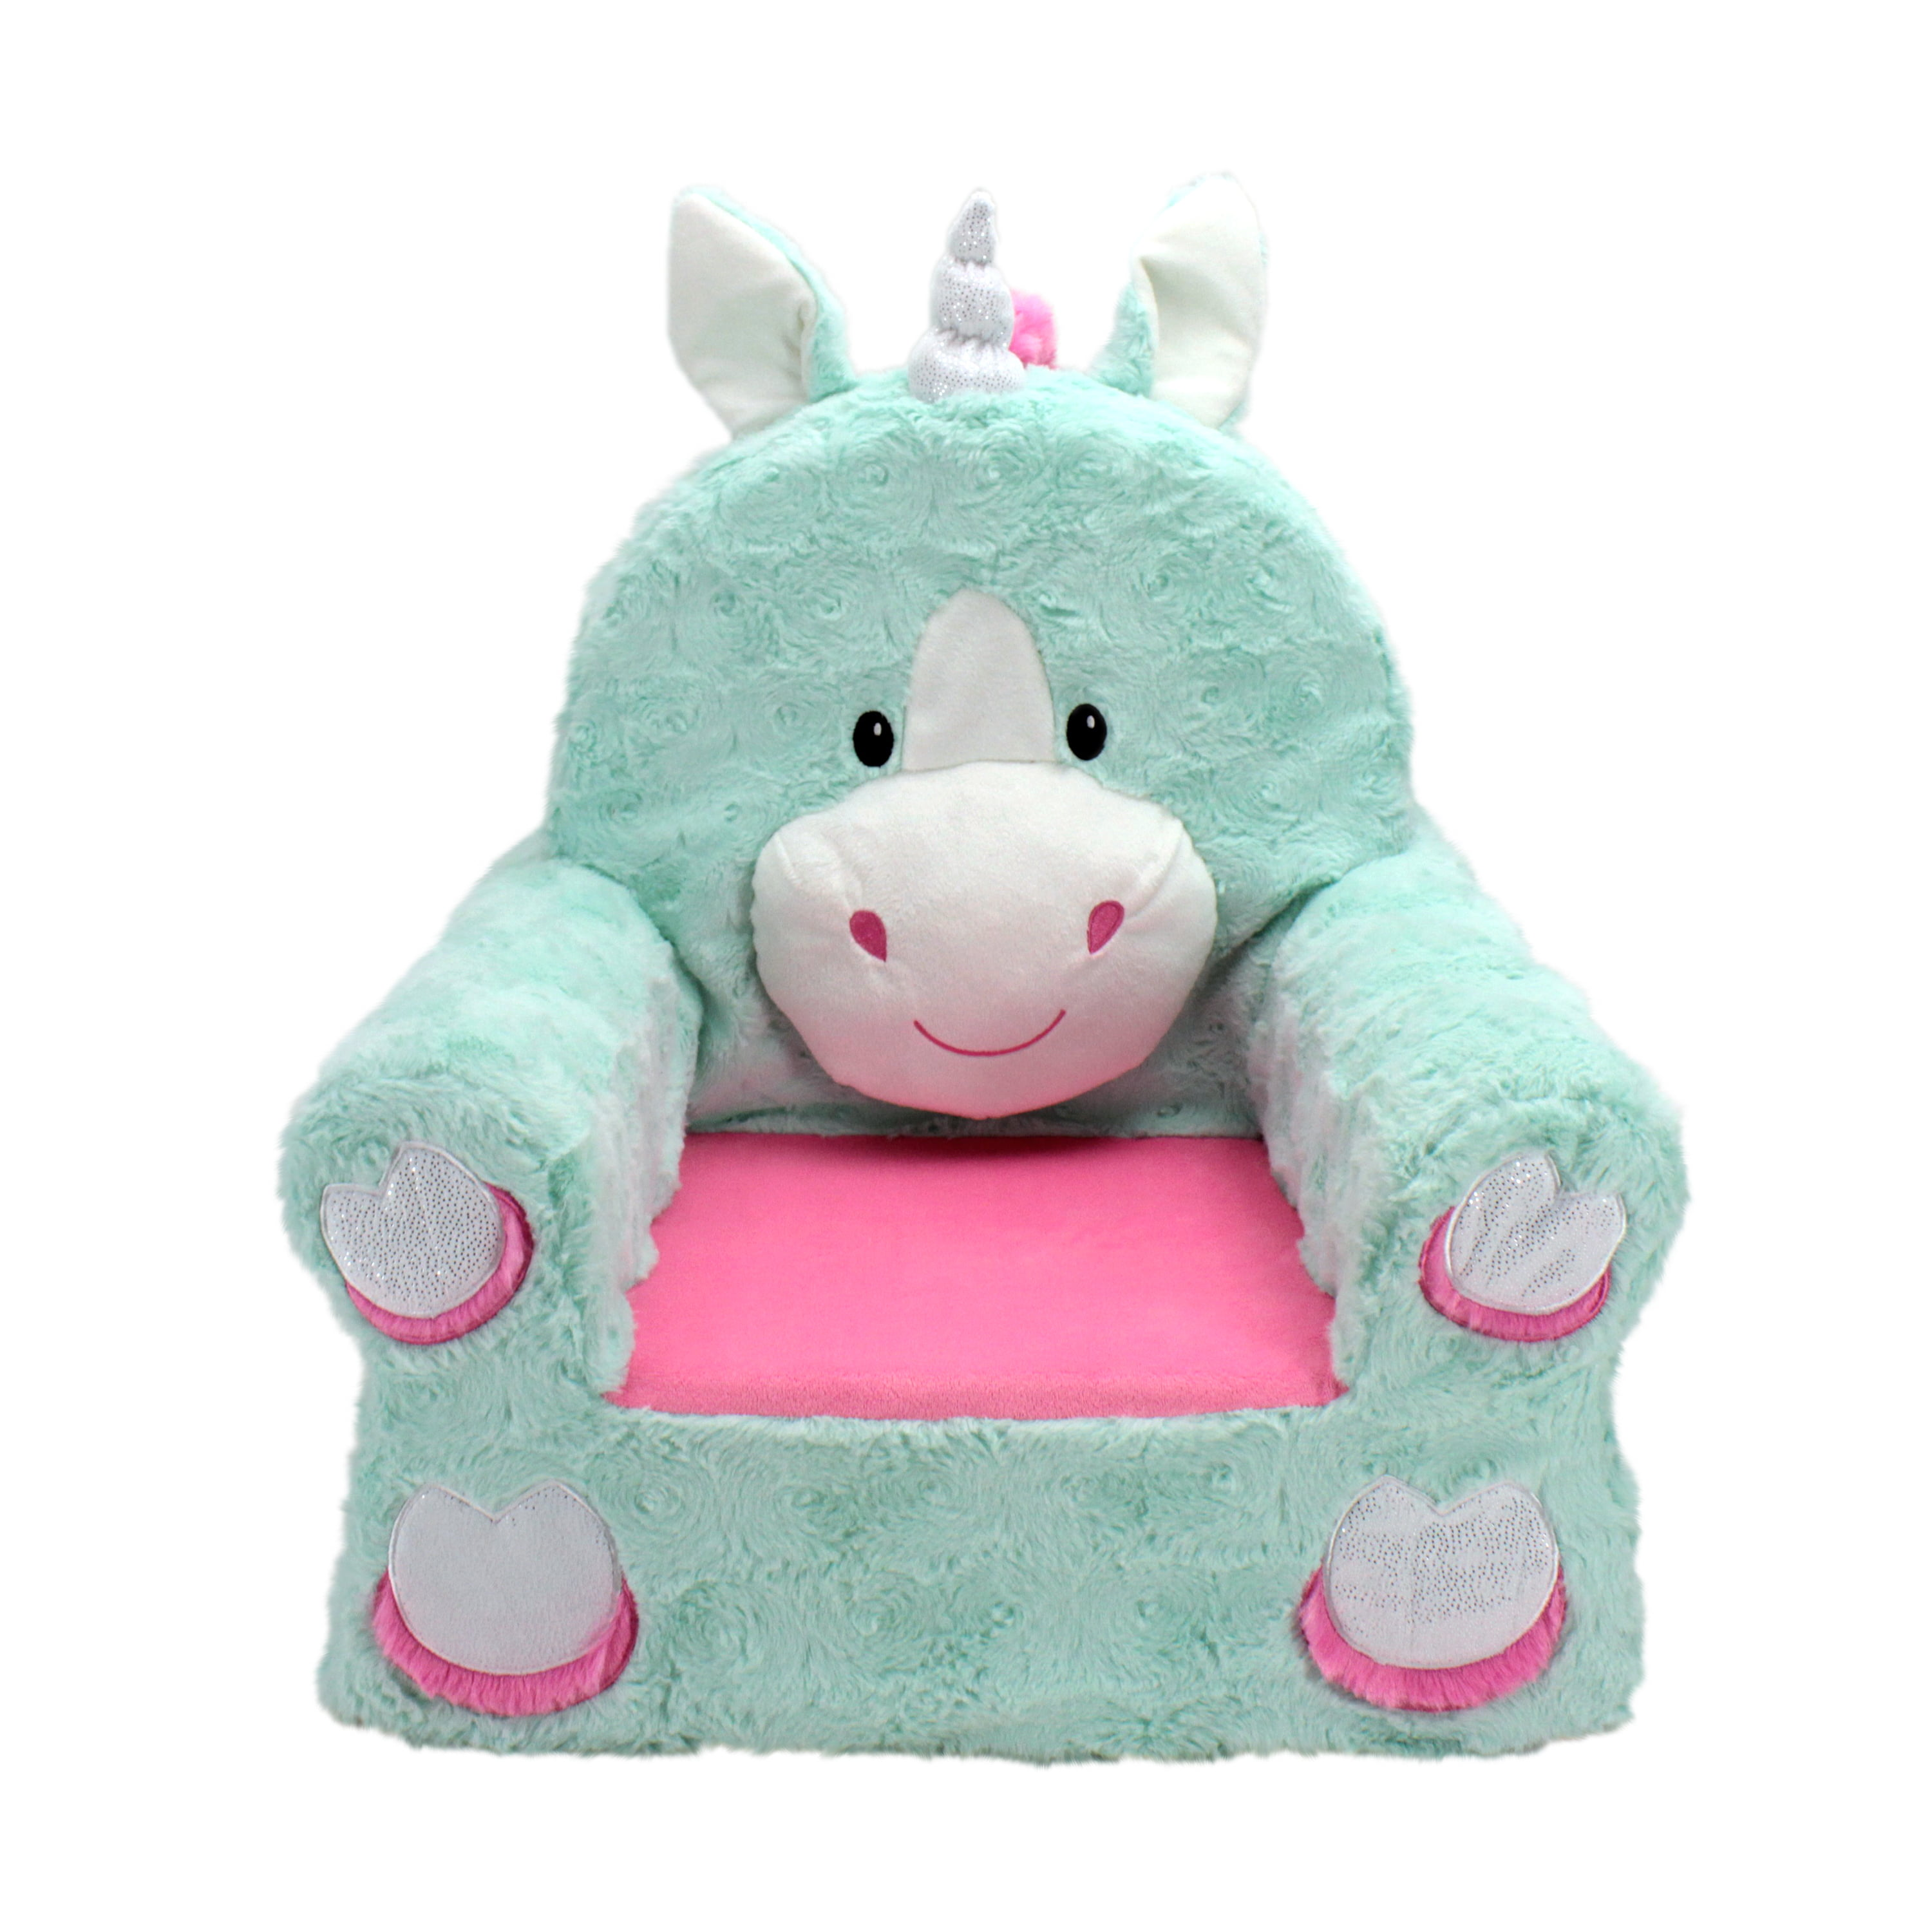 Sweet Seats Adorable Teal Unicorn Children S Chair